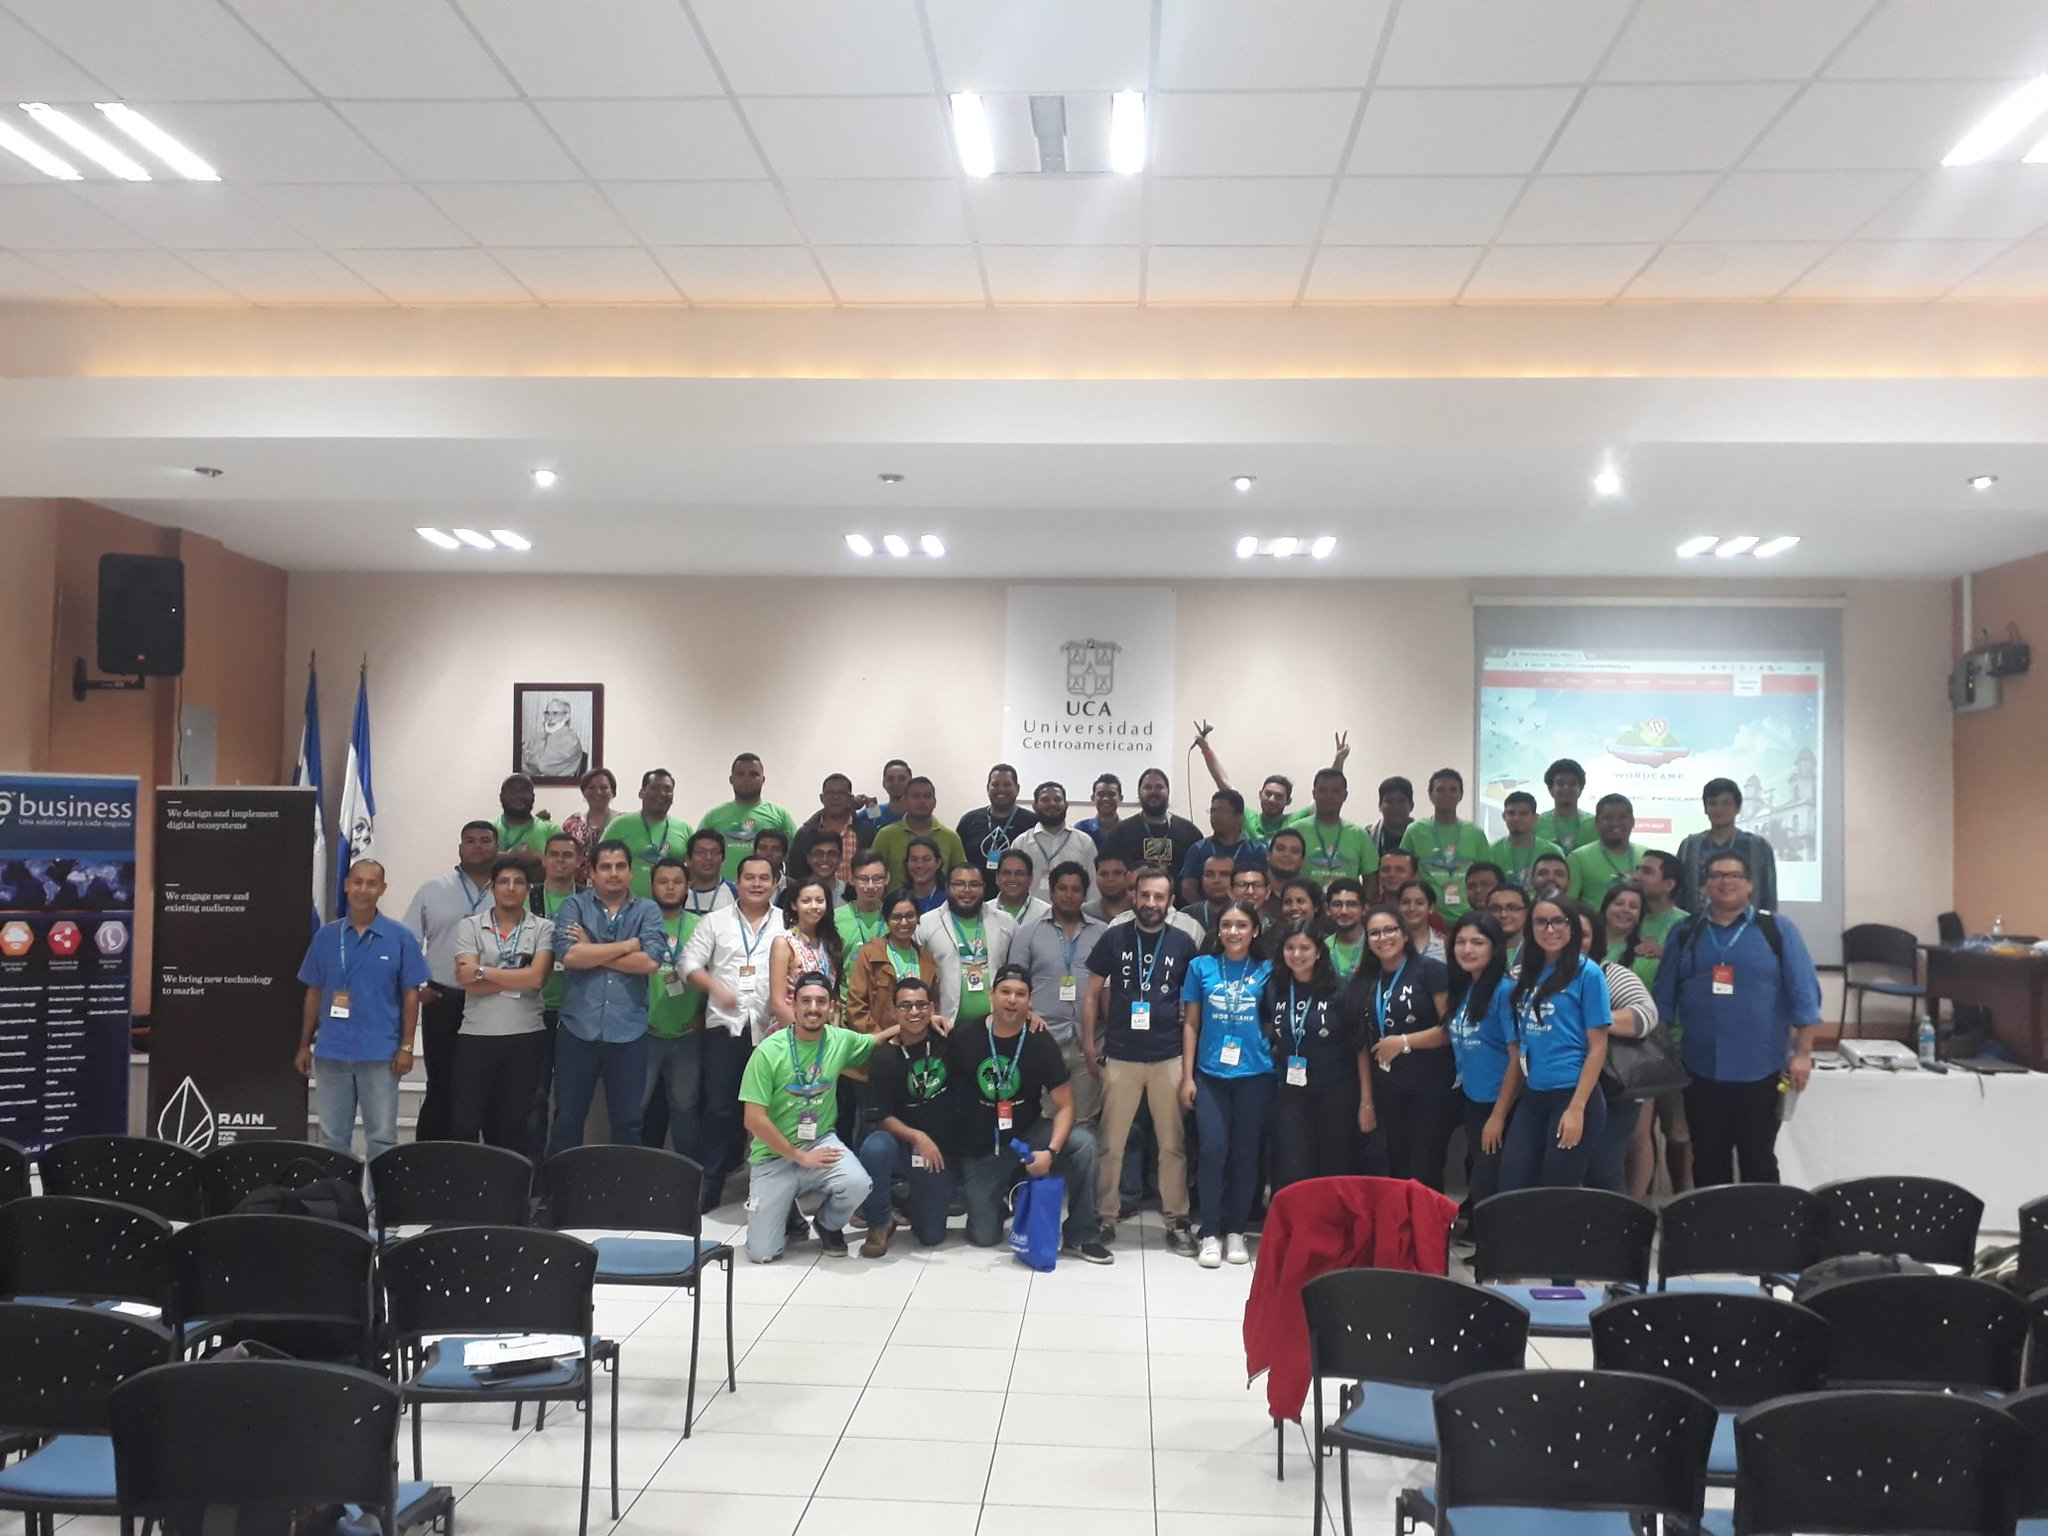 WordCamp NI